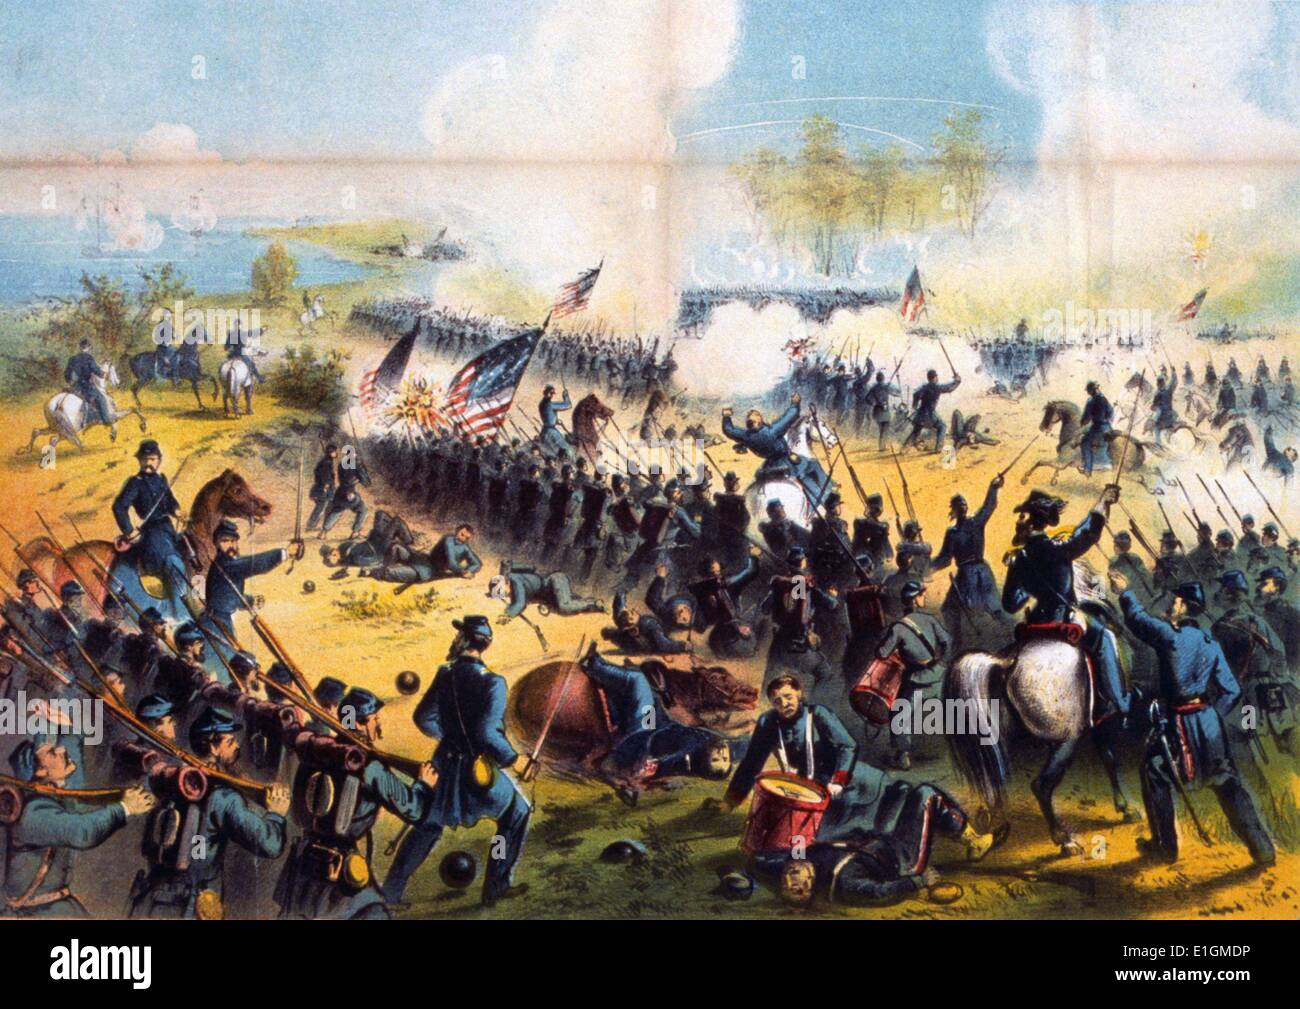 Colour lithograph of The Battle of Shiloh. Dated 1862 - Stock Image